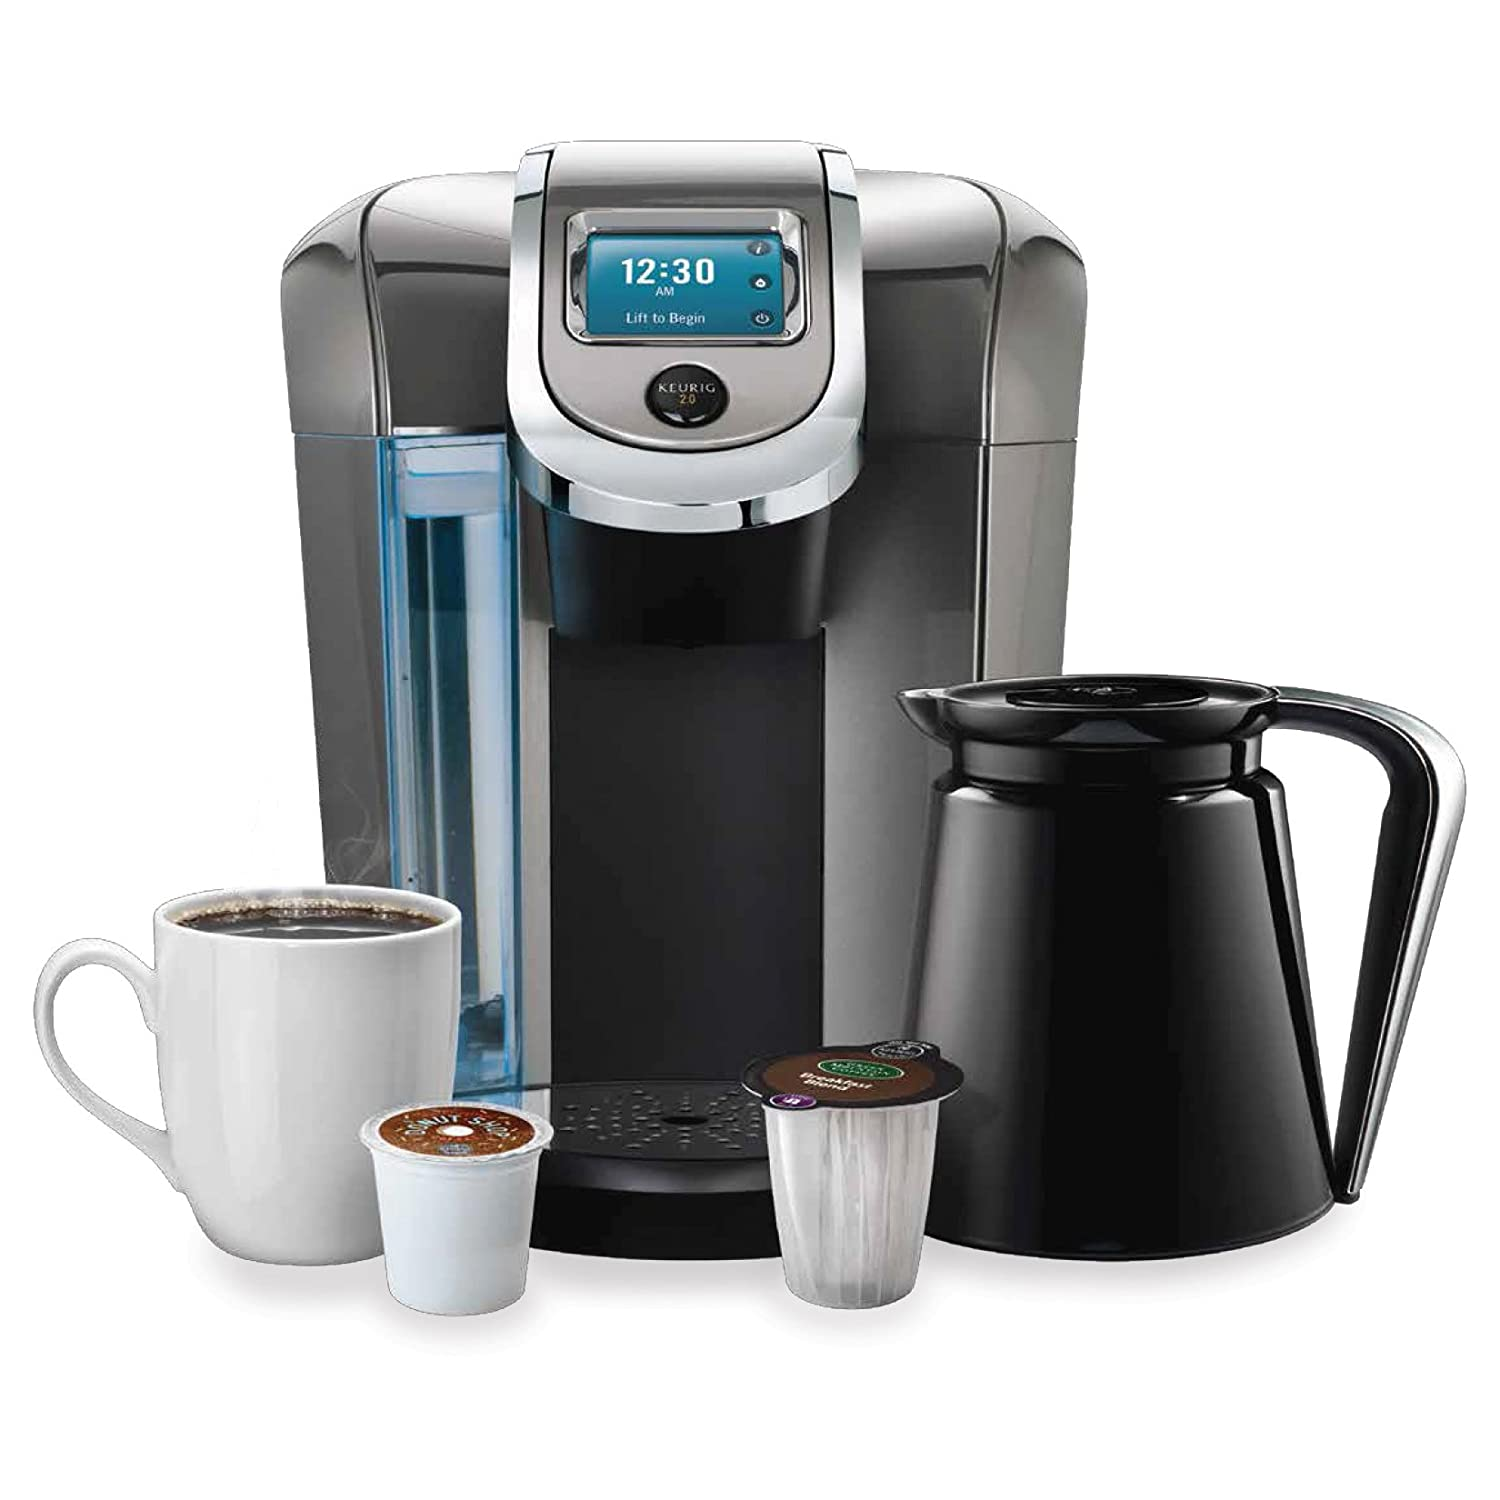 Keurig Coffee Maker Instructions : Keurig 2.0 Brewer Review